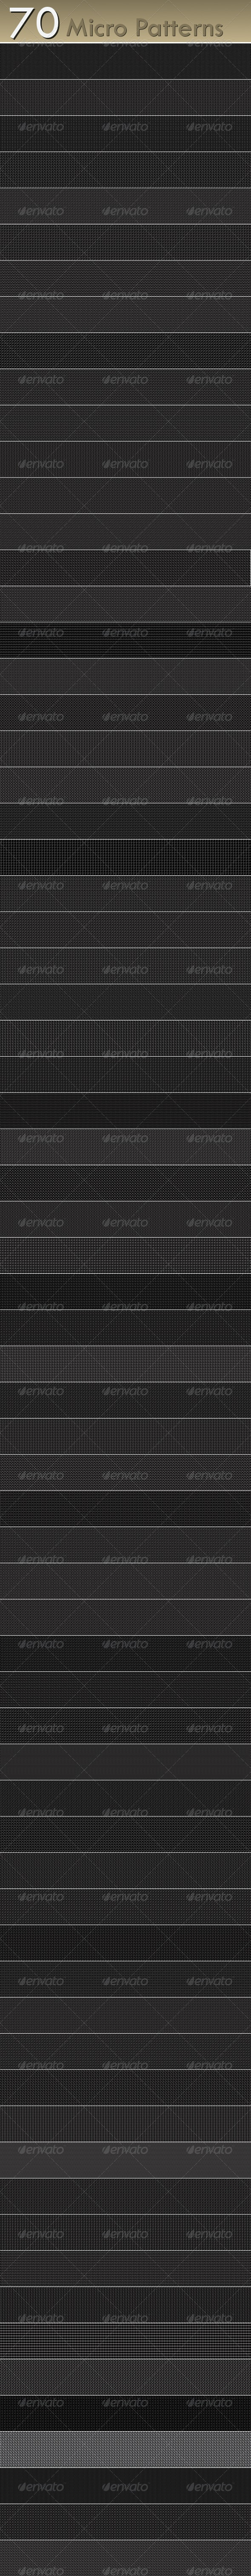 70 Tileable Micro Web Patterns - Patterns Backgrounds